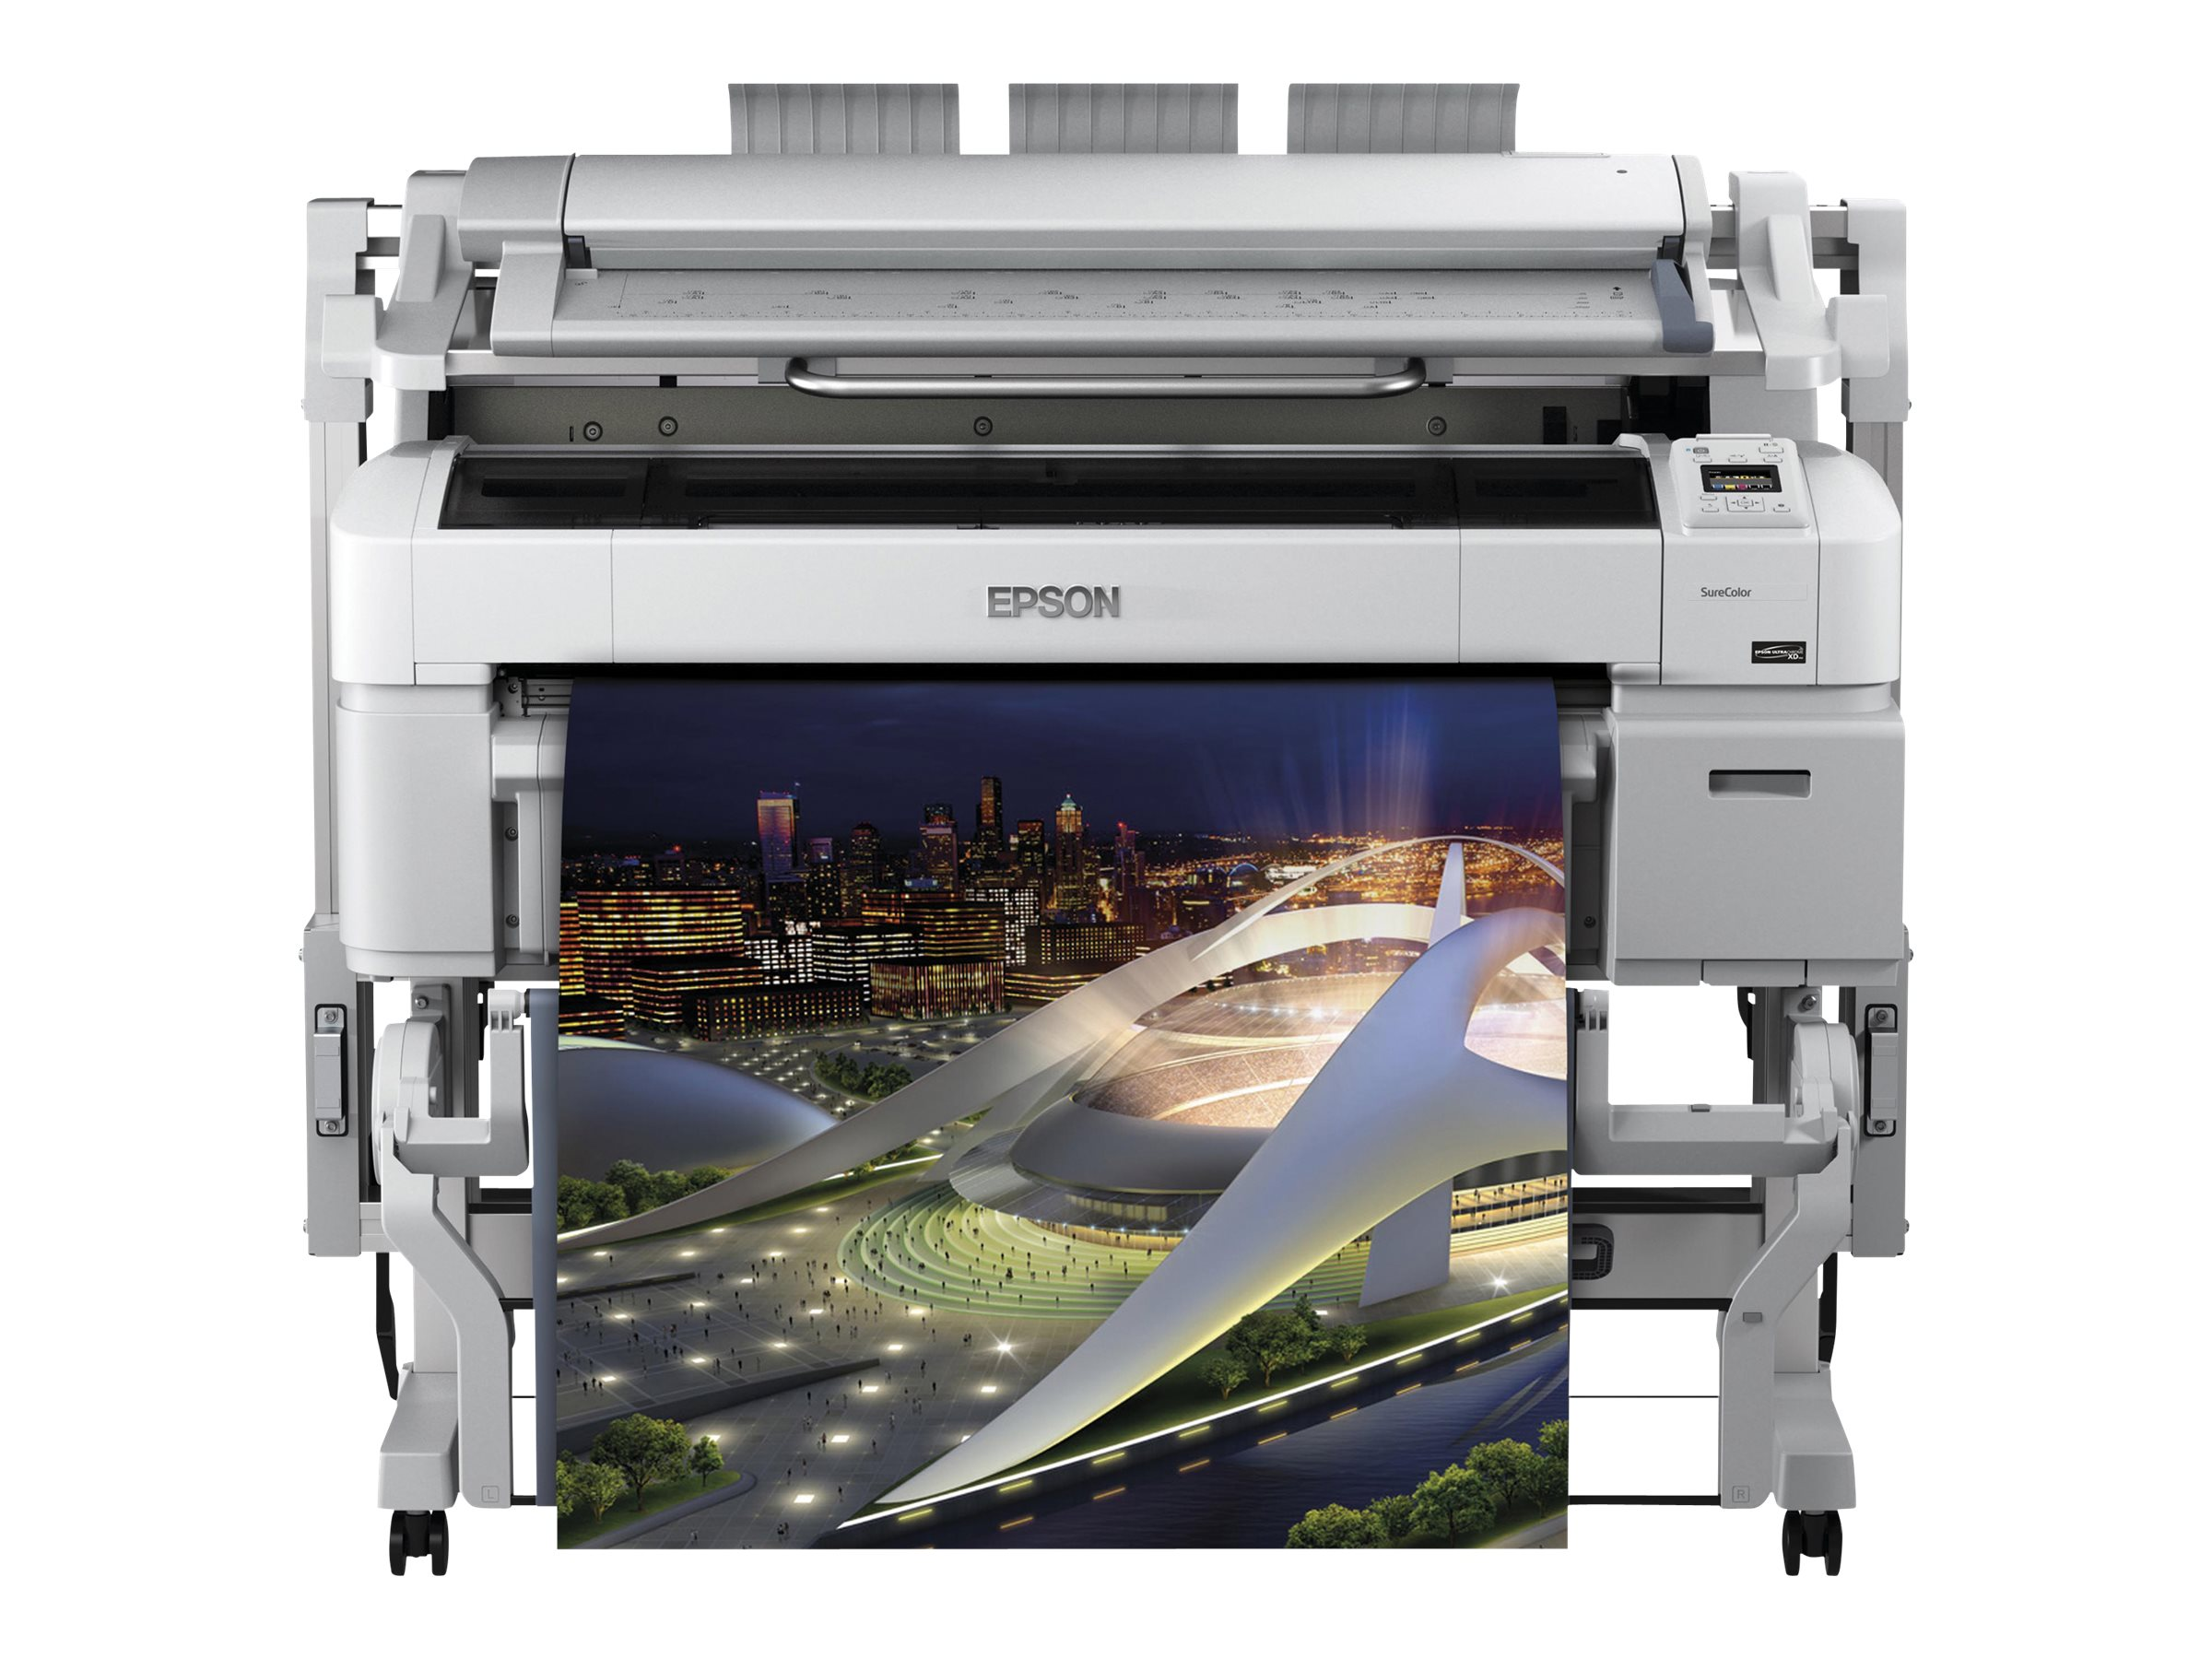 Epson SureColor T5270 Printer - $3995 less instant rebate of $750.00, SCT5270SR, 17930520, Printers - Large Format